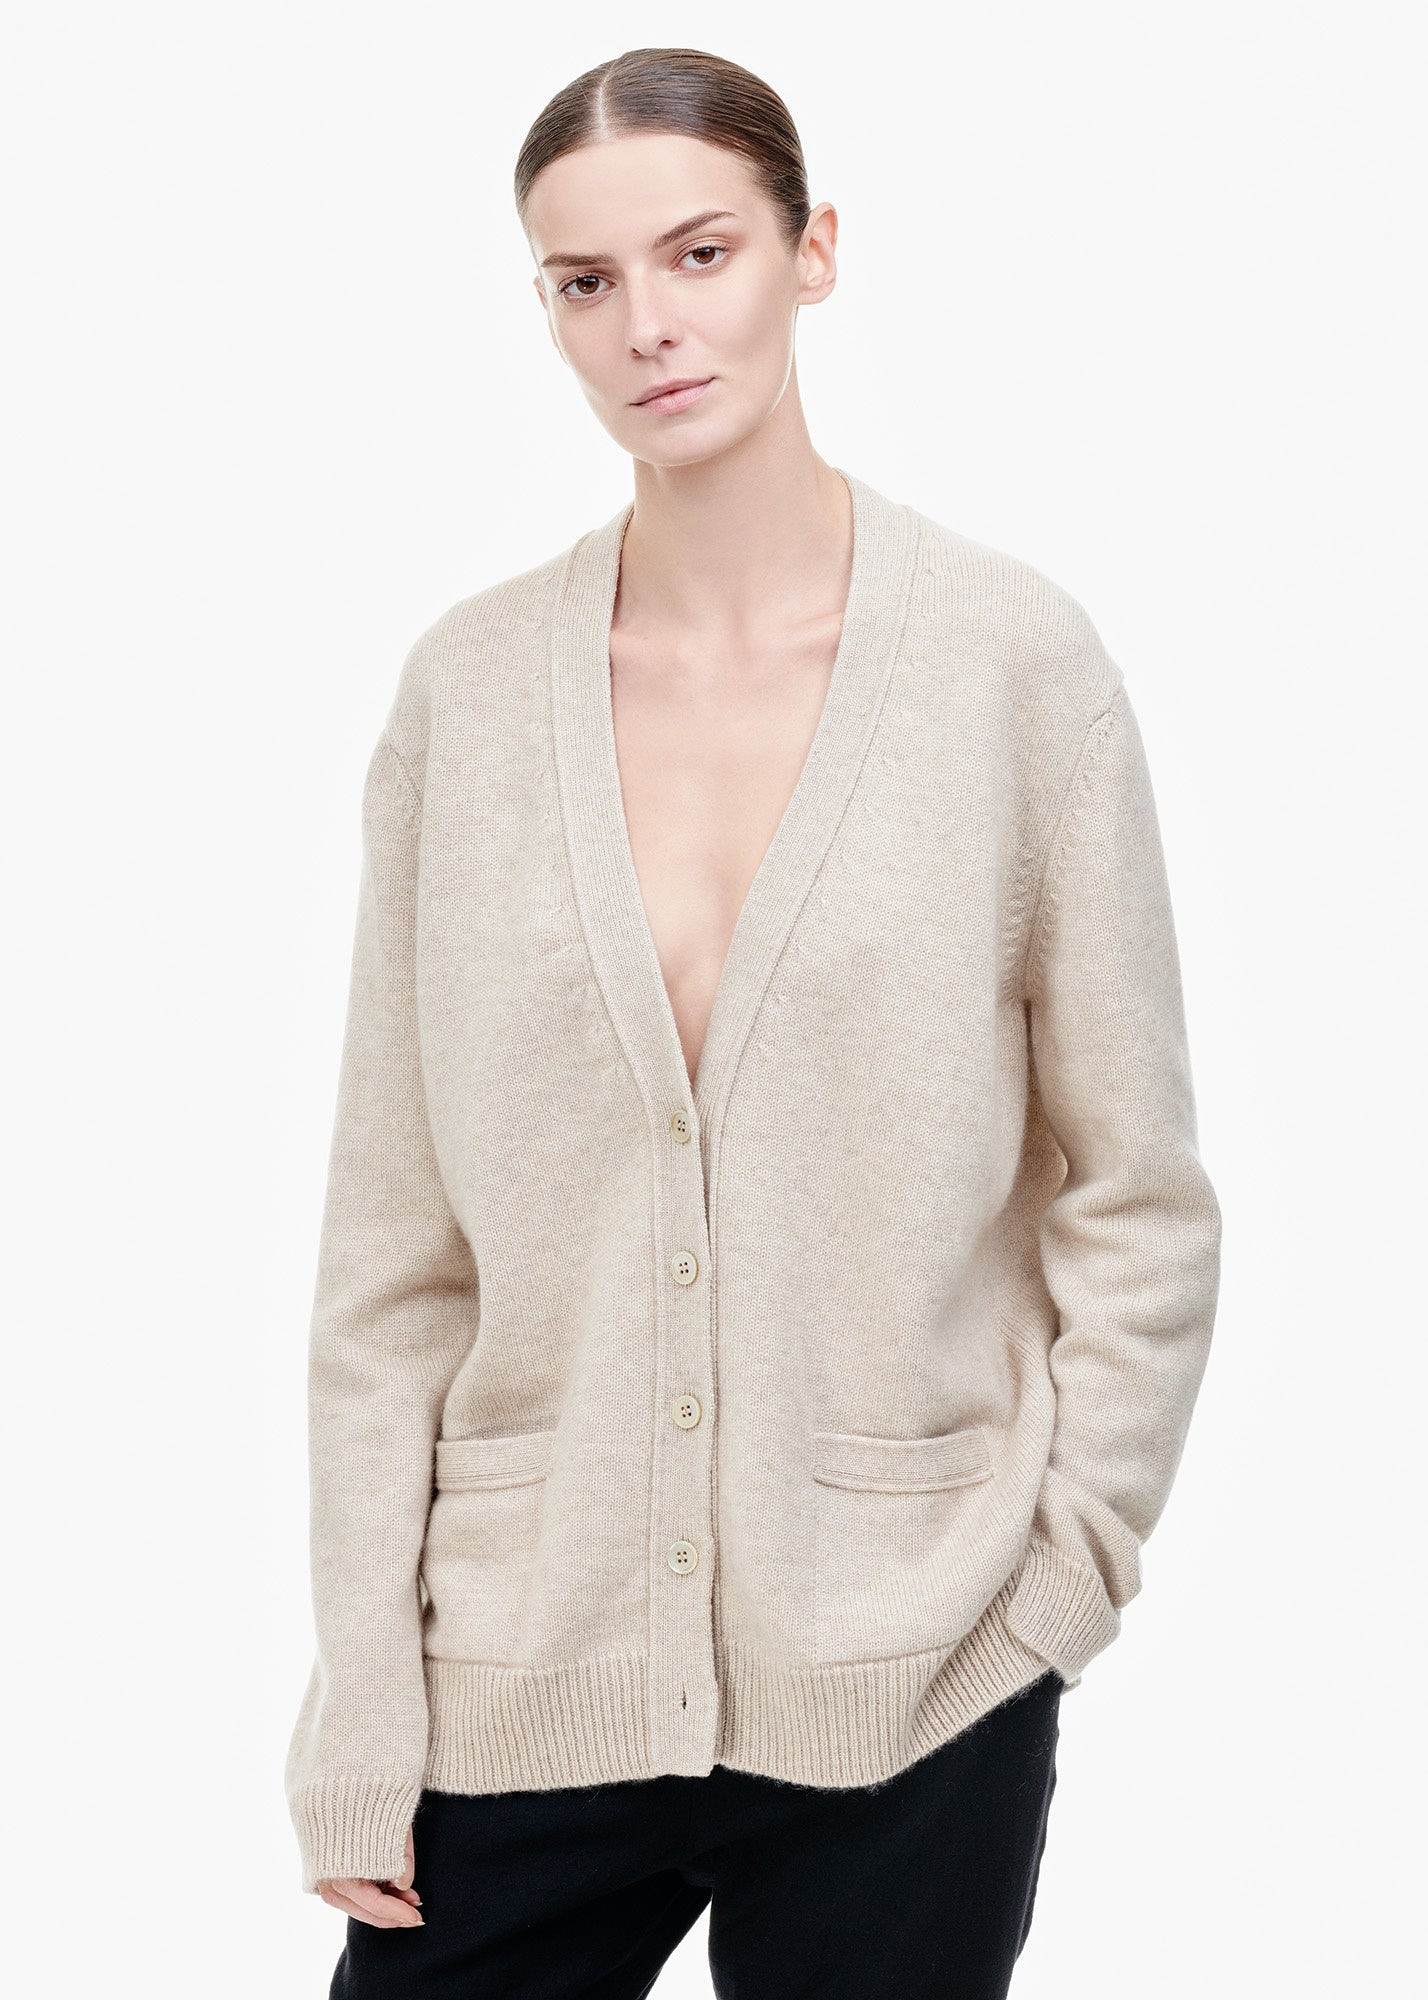 TIINA the STORE V-Neck Cashmere Cardigan Sand